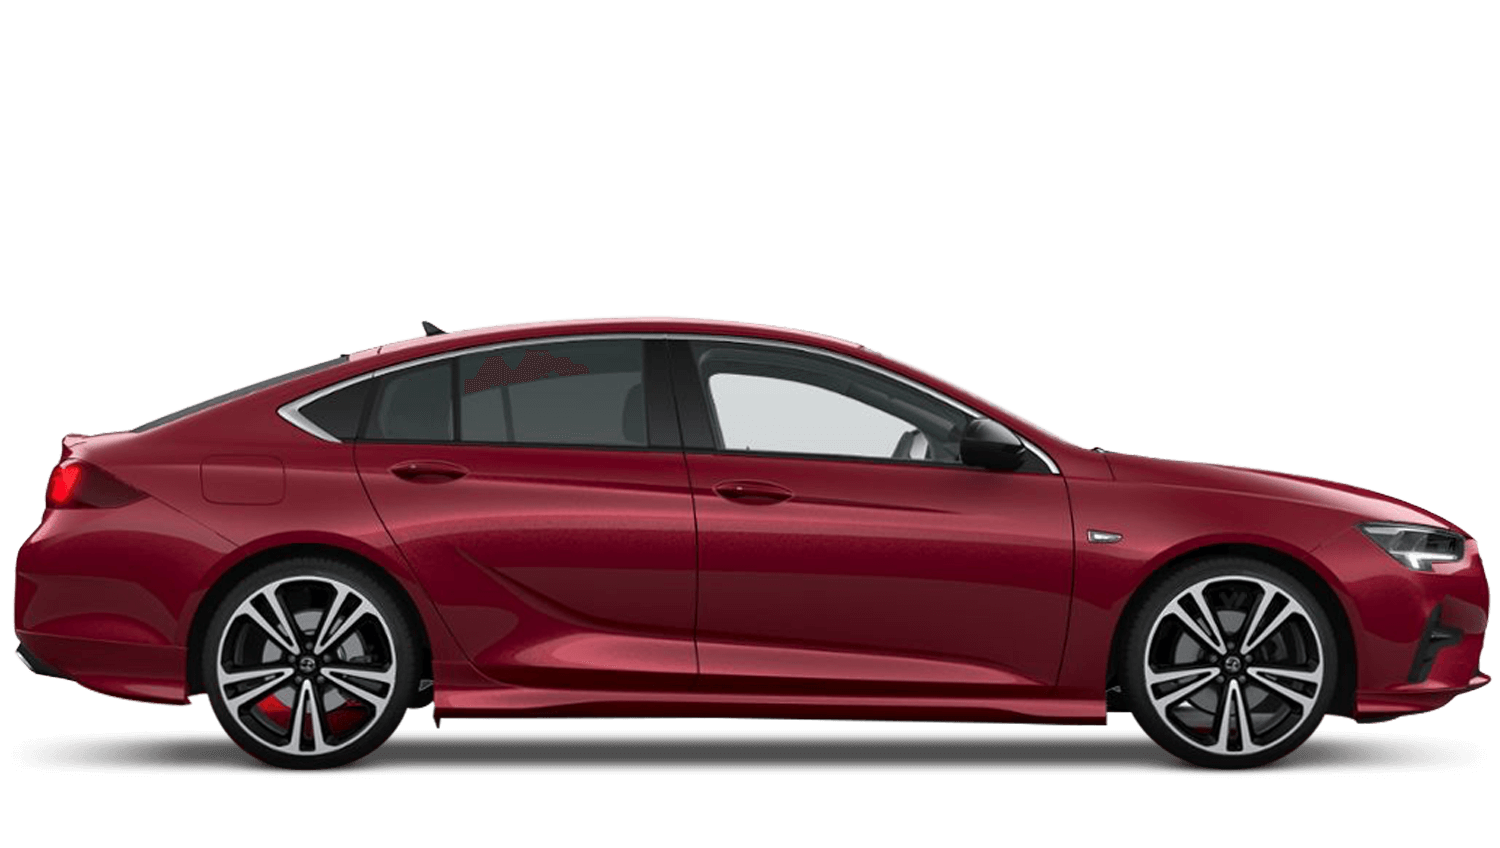 Hot Red (Premium) New Vauxhall Insignia